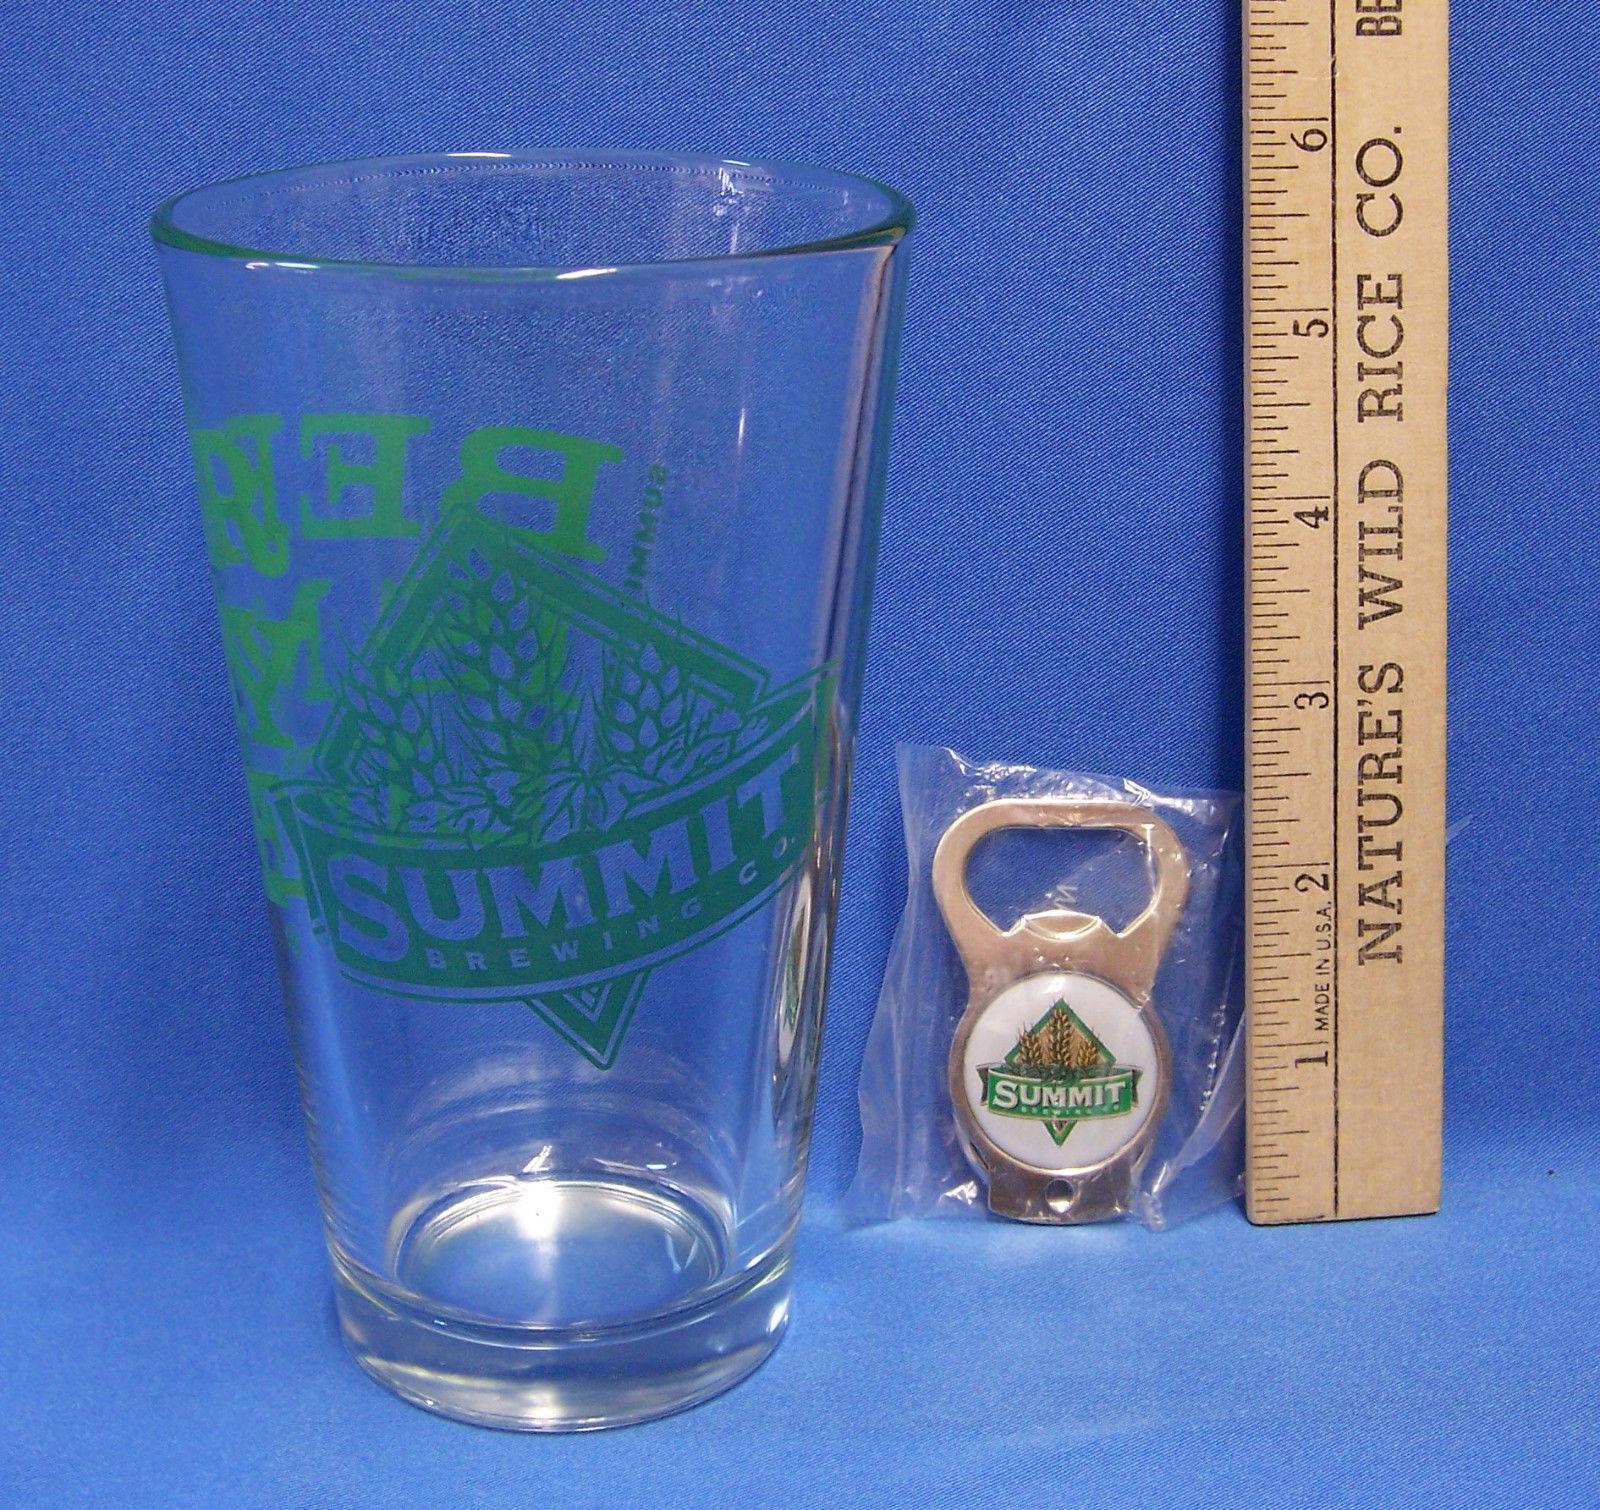 Summit Brewing Co Clear Glass & Key Chain Metal Bottle Opener Beer Is My life